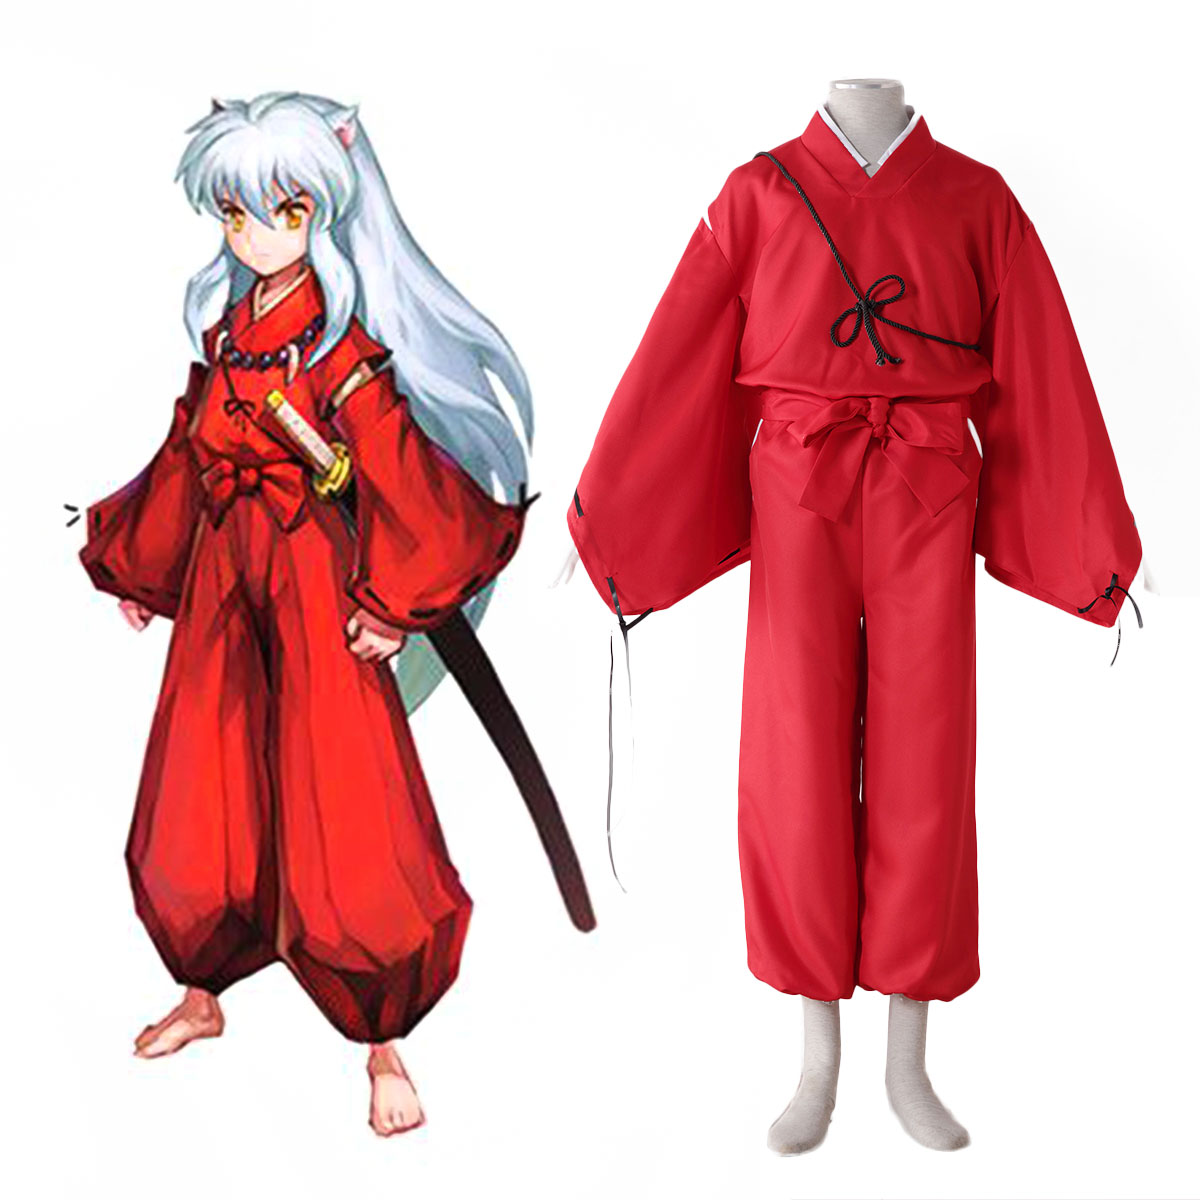 Inuyasha 2 Red Cosplay Costumes AU